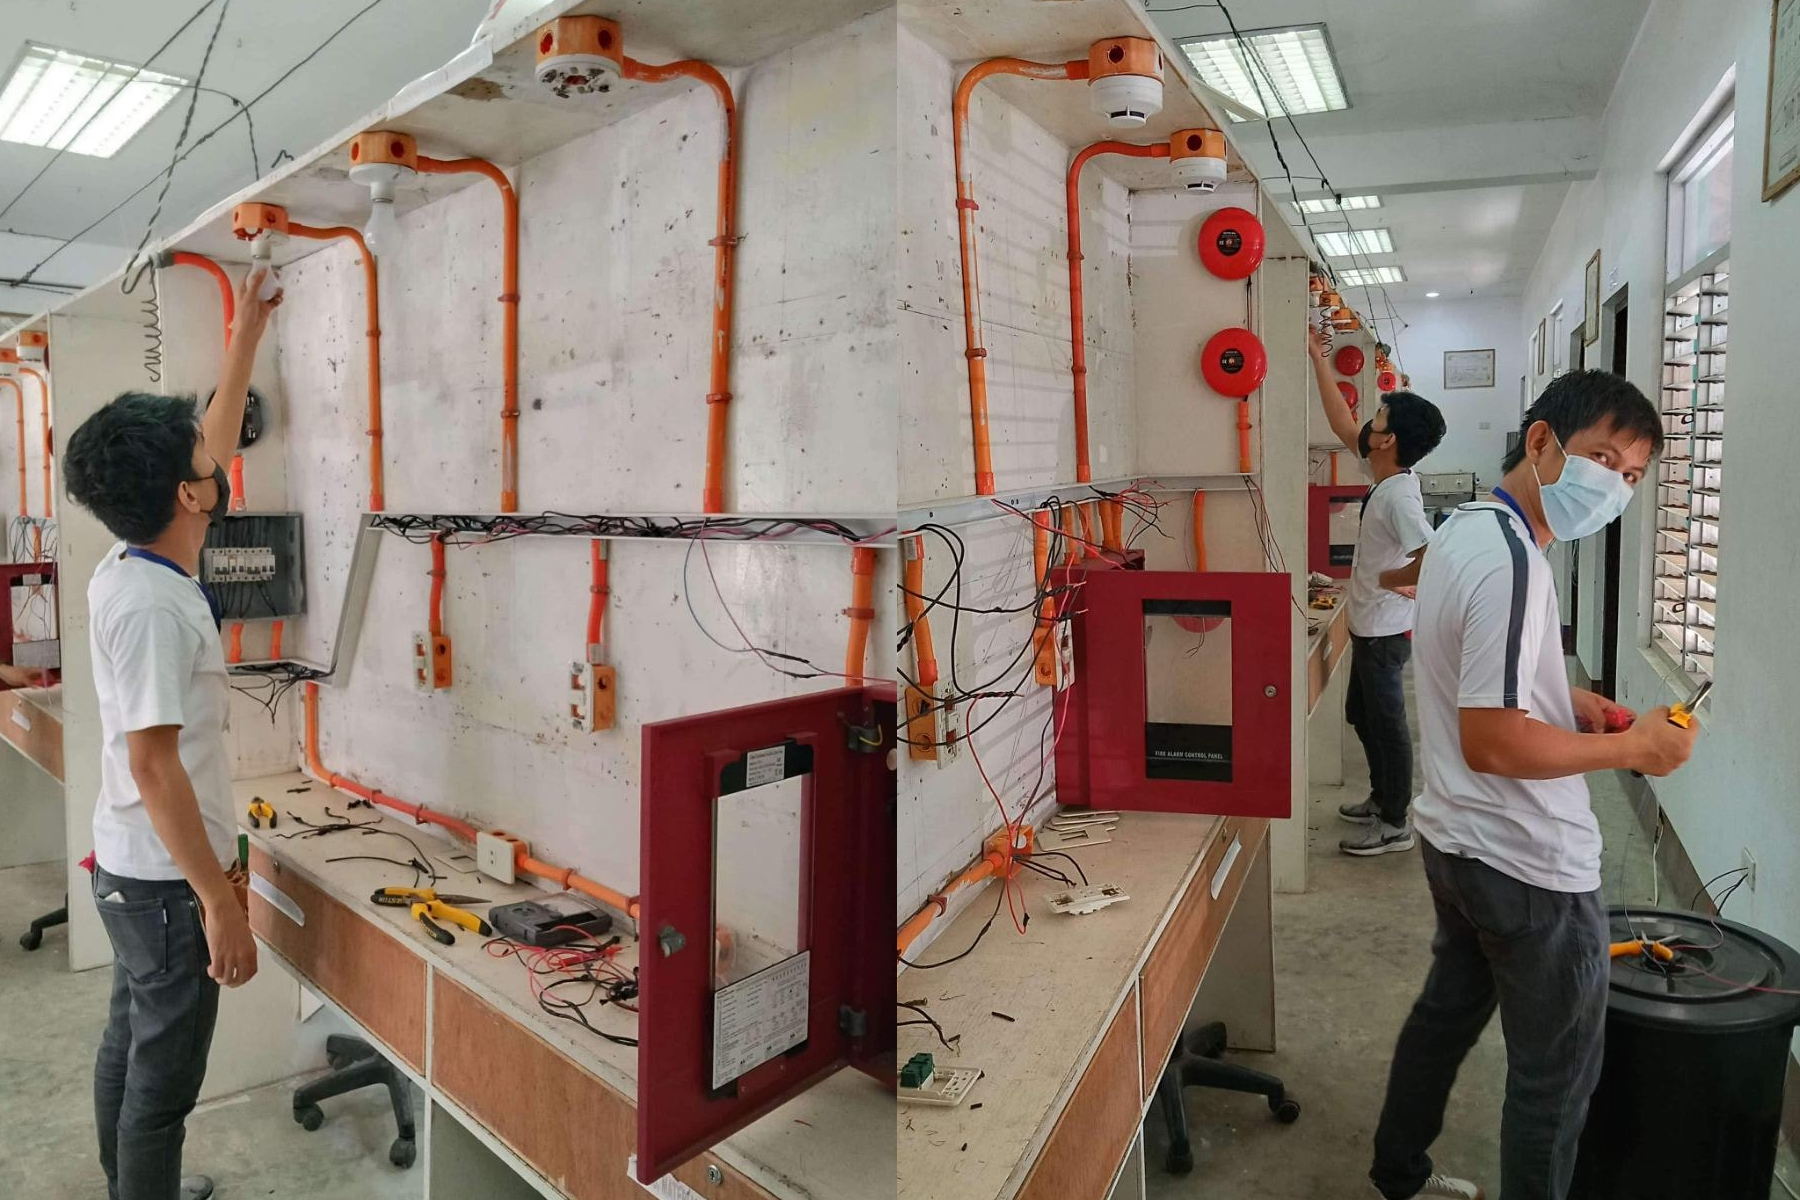 Ako Bicol PartyList conducted a Competency Assessment of Trainees in Masbate Central Technical Institute in Masbate City. This assessment is for the trainees of Electrical Installation and Maintenance NC II under the Special Training for Employment Program last January 23-24, 2021.